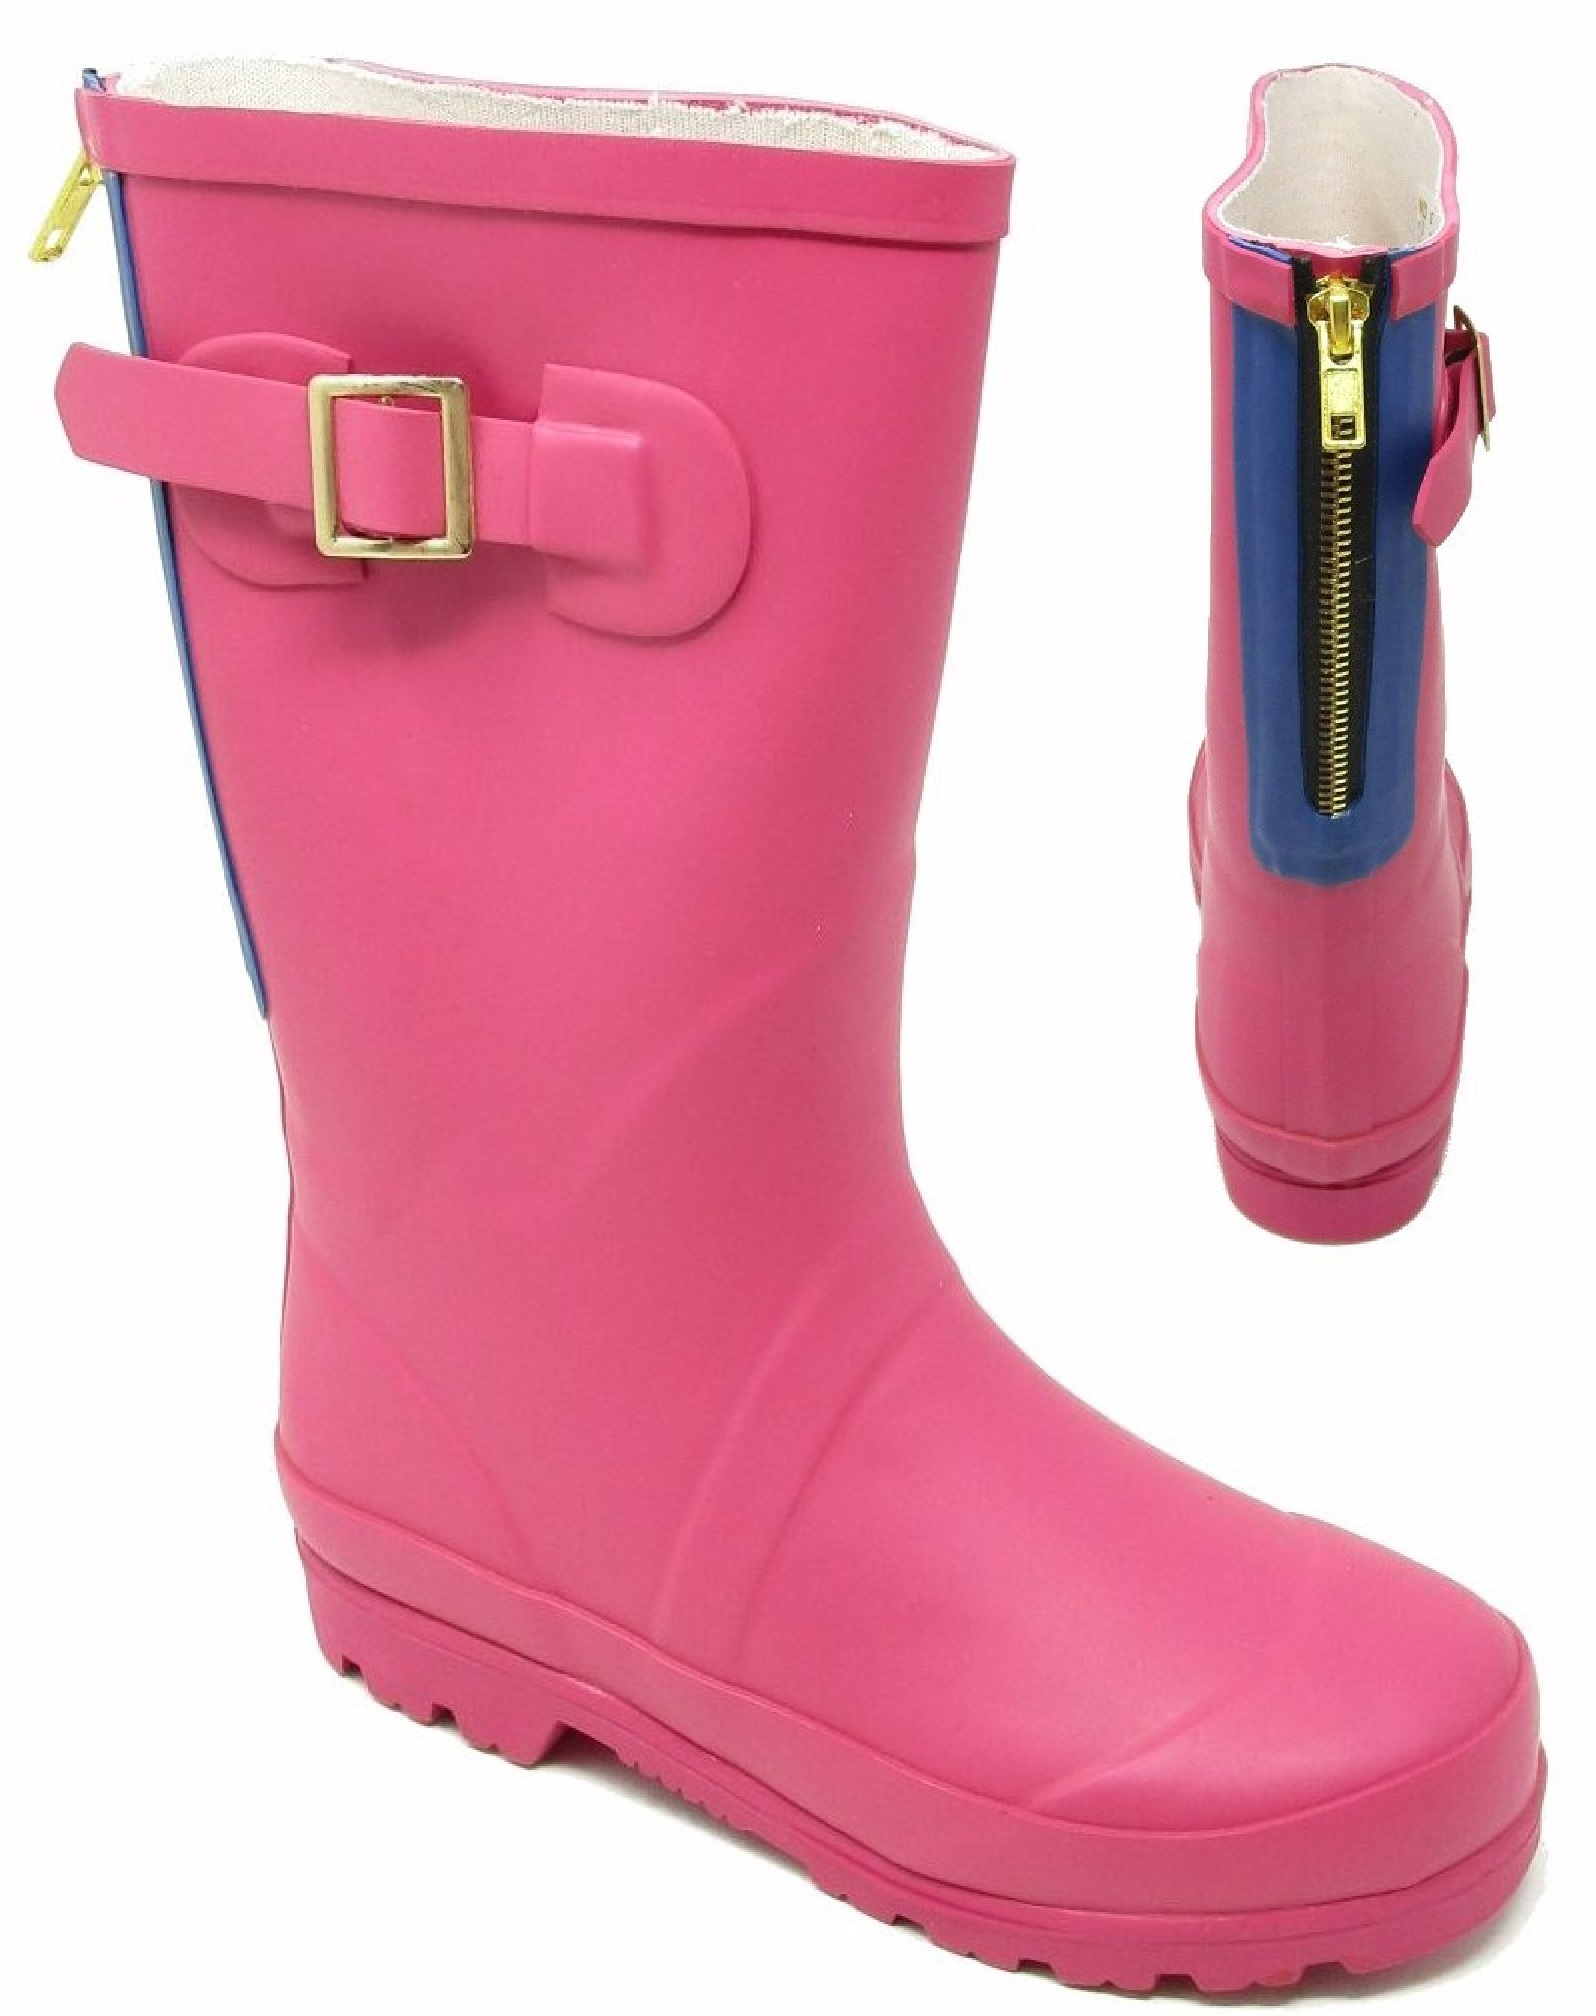 kids FIRST wellington boot pink size 13